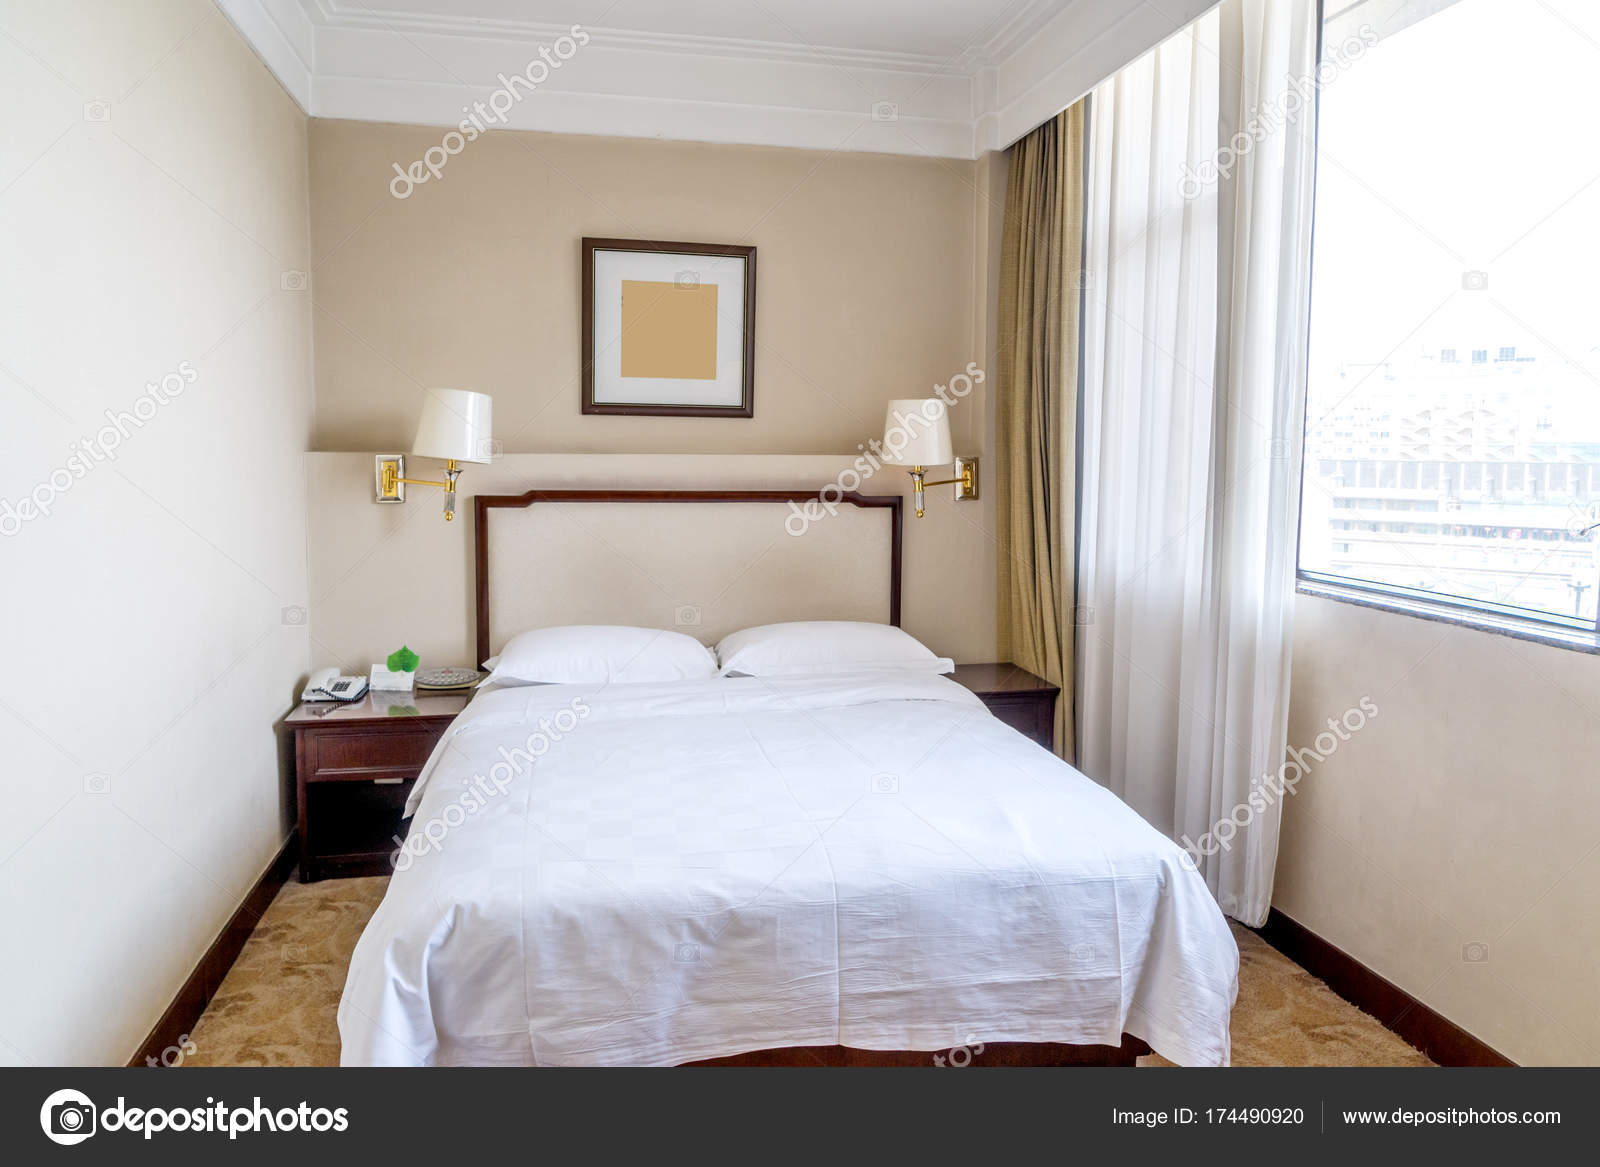 Decoration Hotel Design Decoration Single Bedroom Modern Hotel Stock Photo